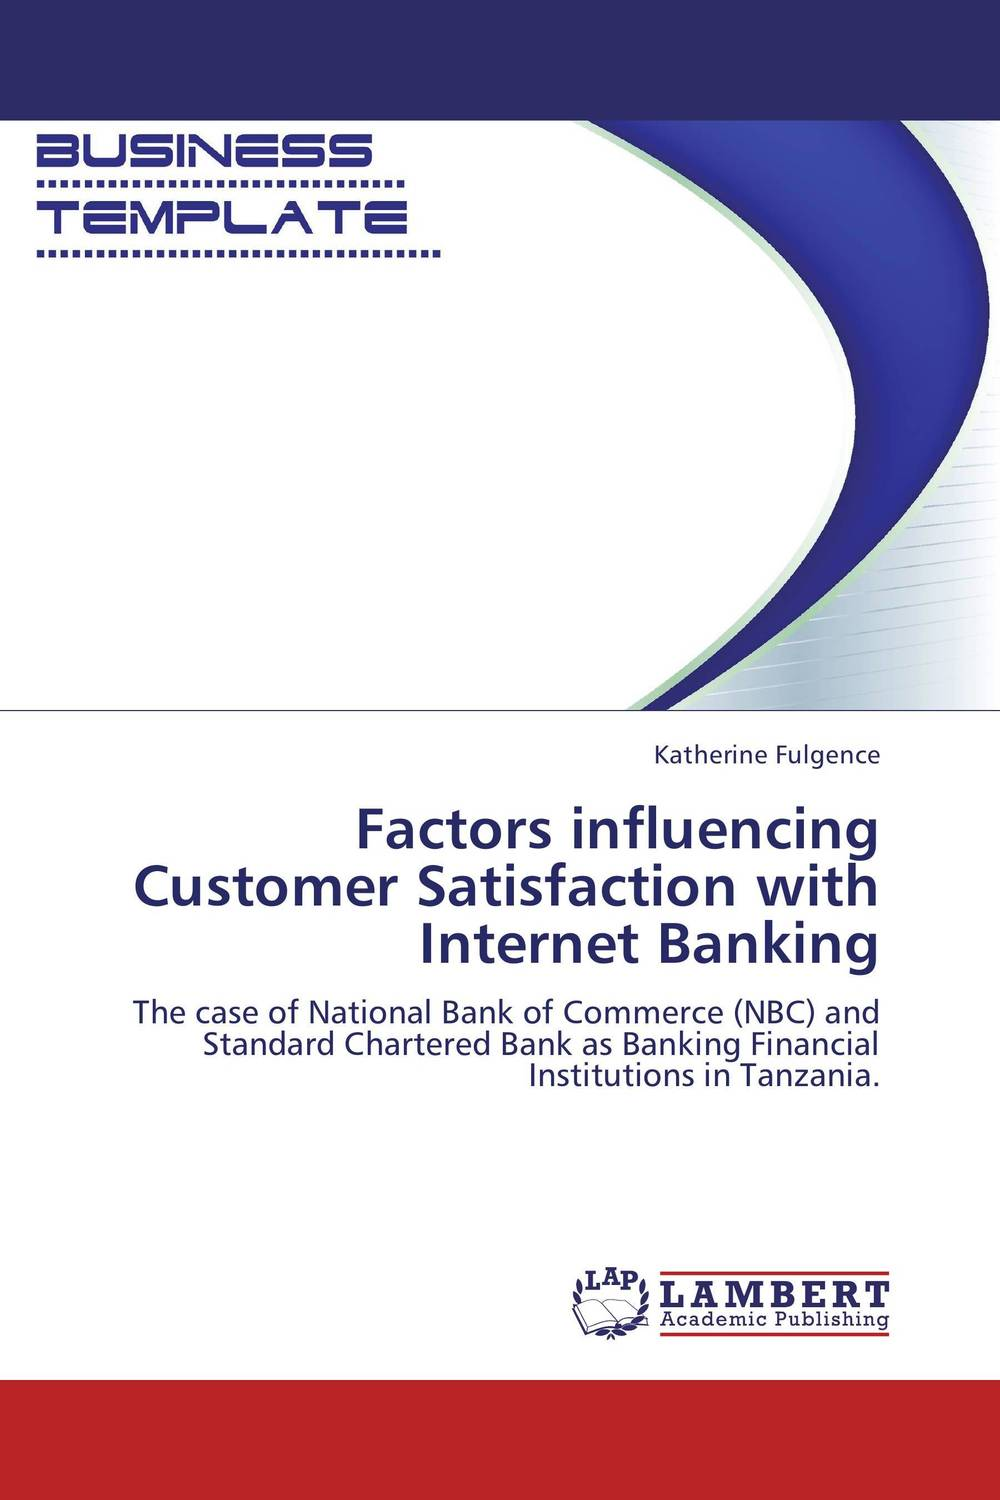 Factors influencing Customer Satisfaction with Internet Banking mining design patterns for internet banking architecture